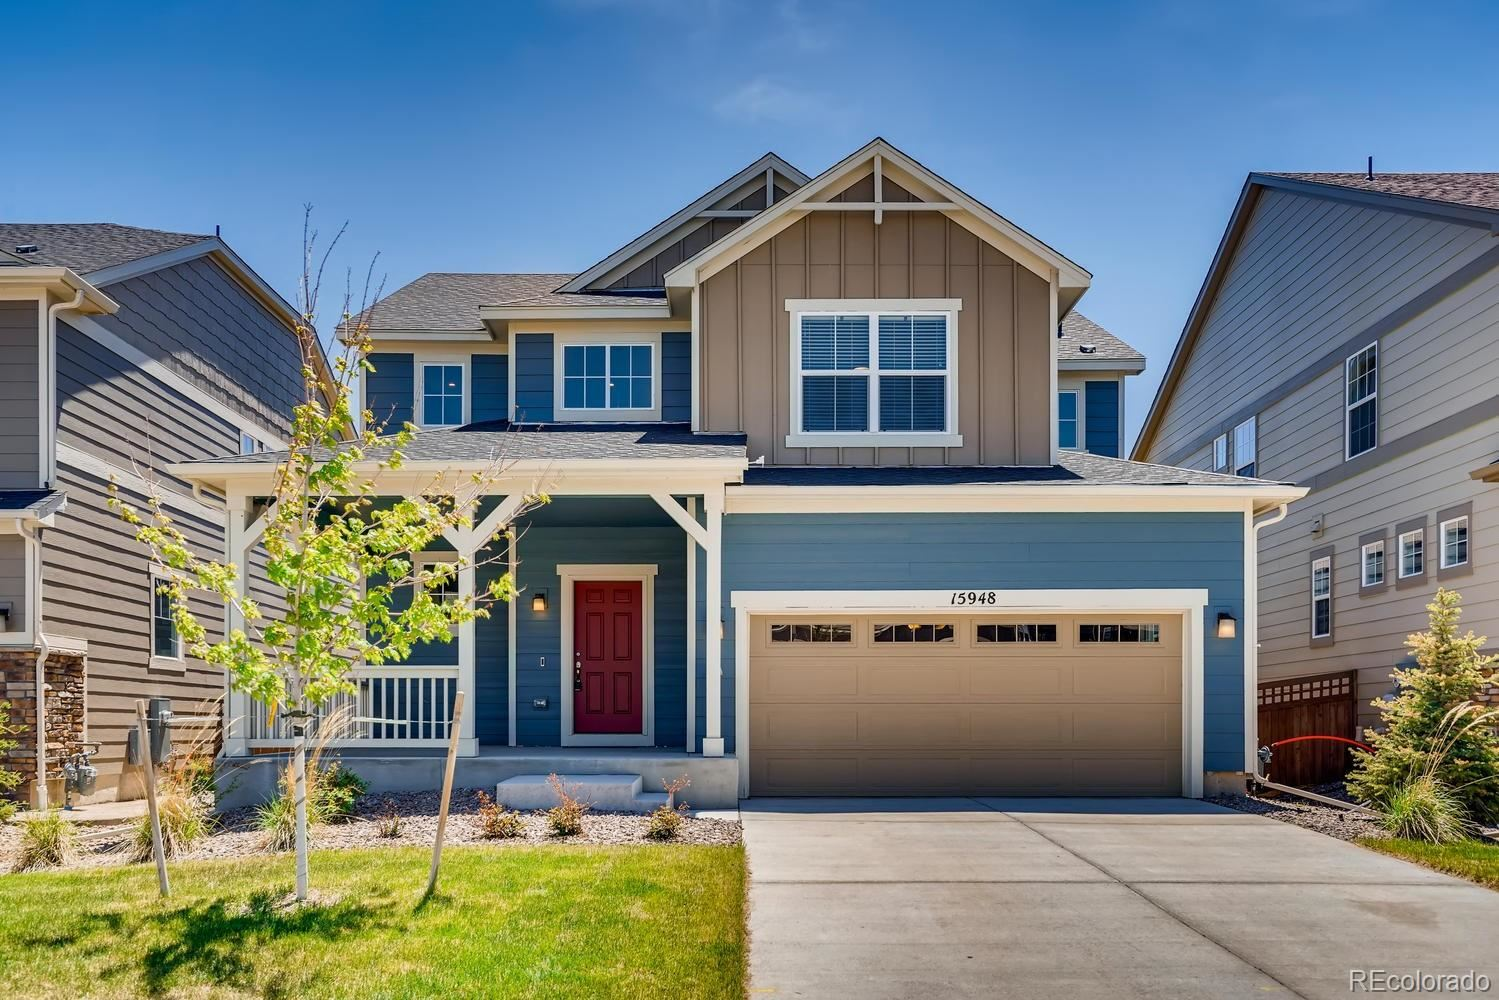 15948 E Otero Circle, Centennial, CO 80112 - #: 3070304